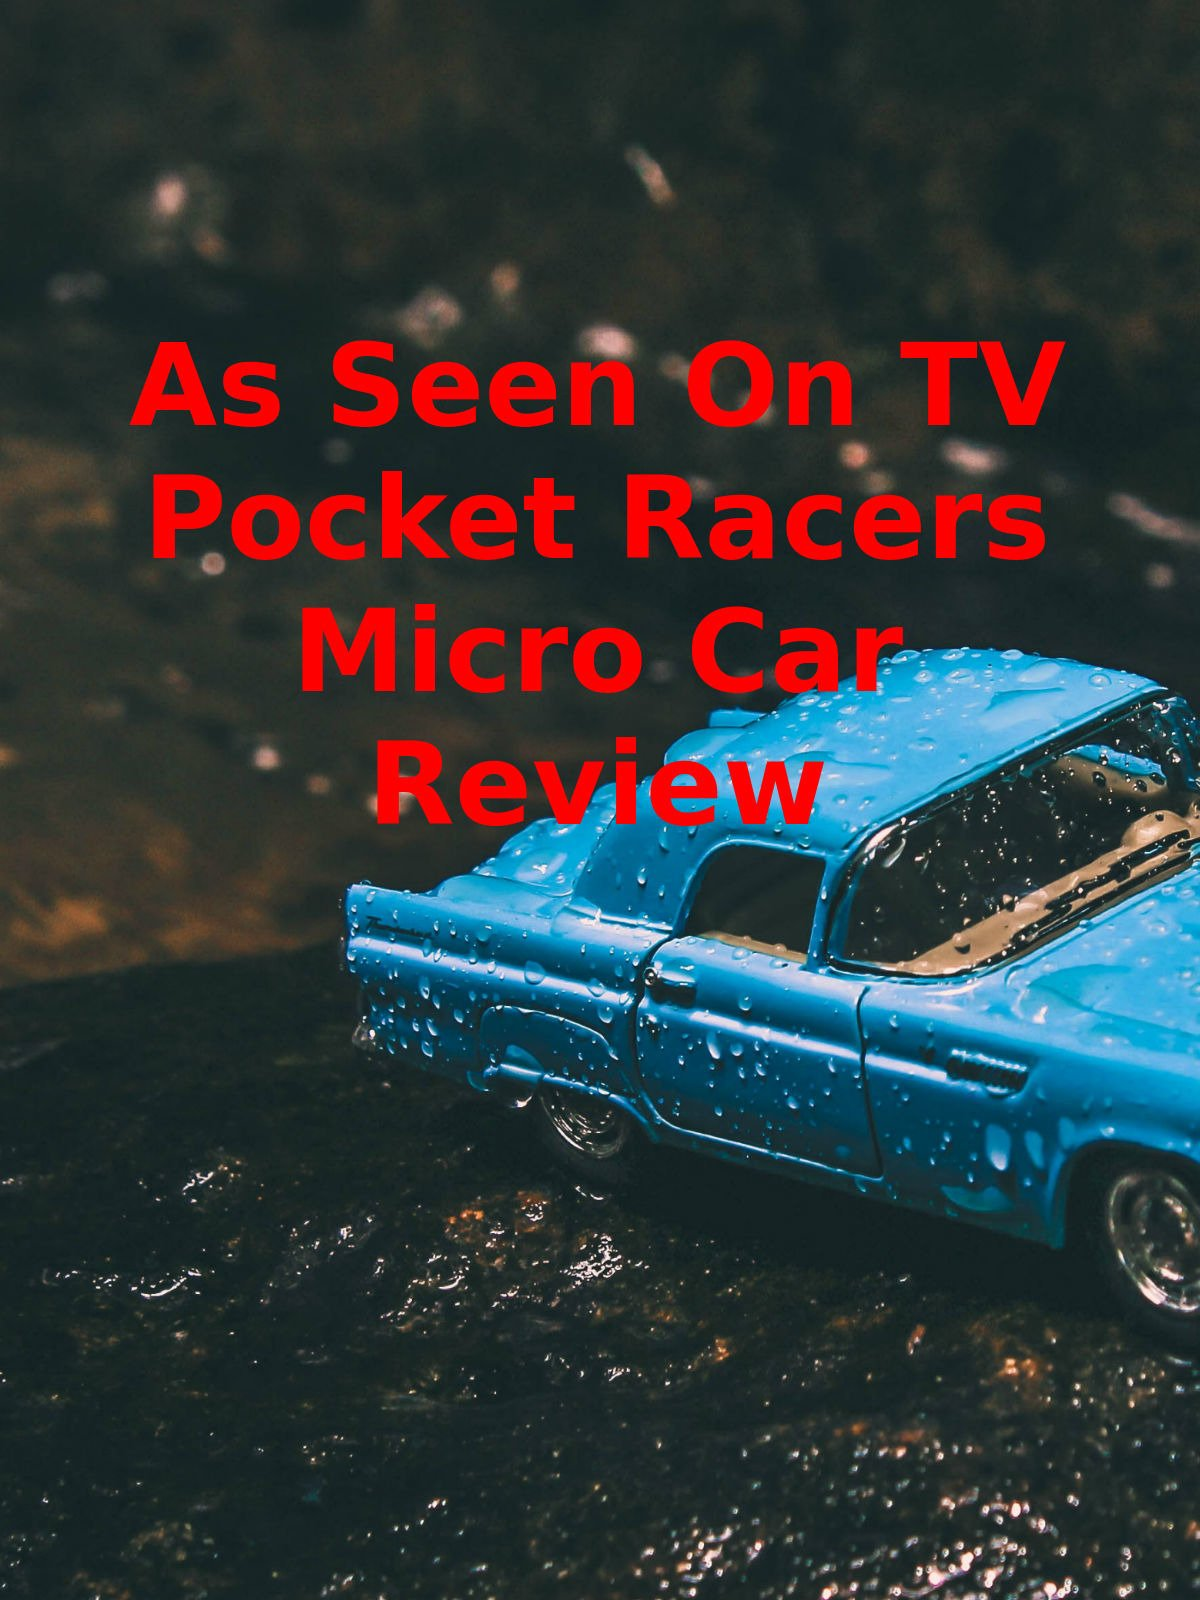 Review: As Seen On TV Pocket Racers Micro Car Review